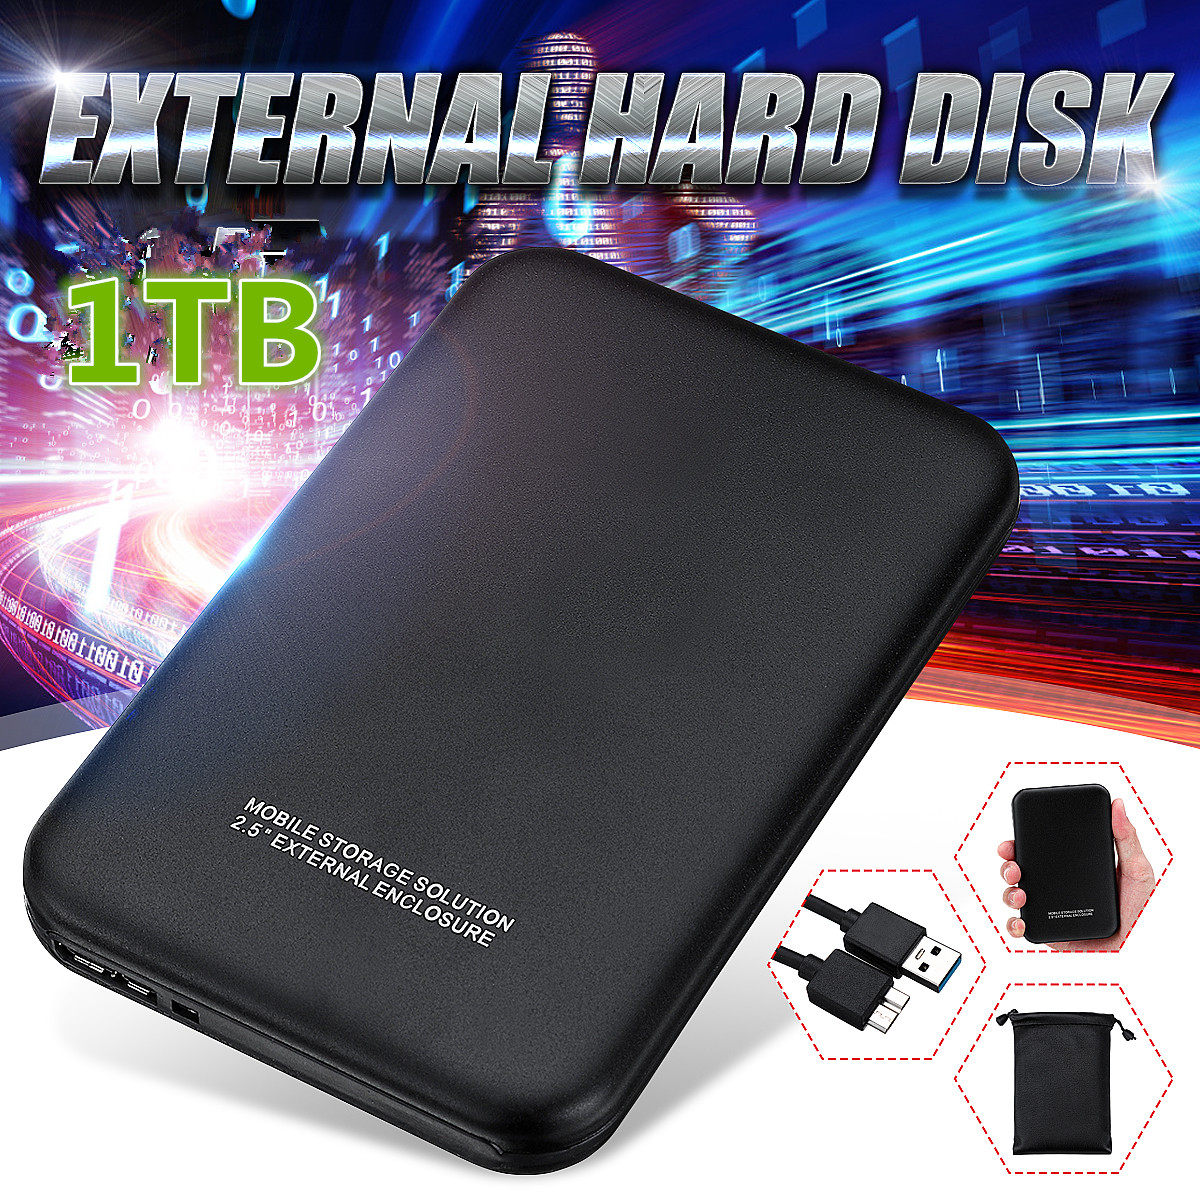 USB 3.0 PC Hard Drive 1T Neutral Hard Drive Black Upgrade High Transmission Support HDD/SSD With USB Cable Business